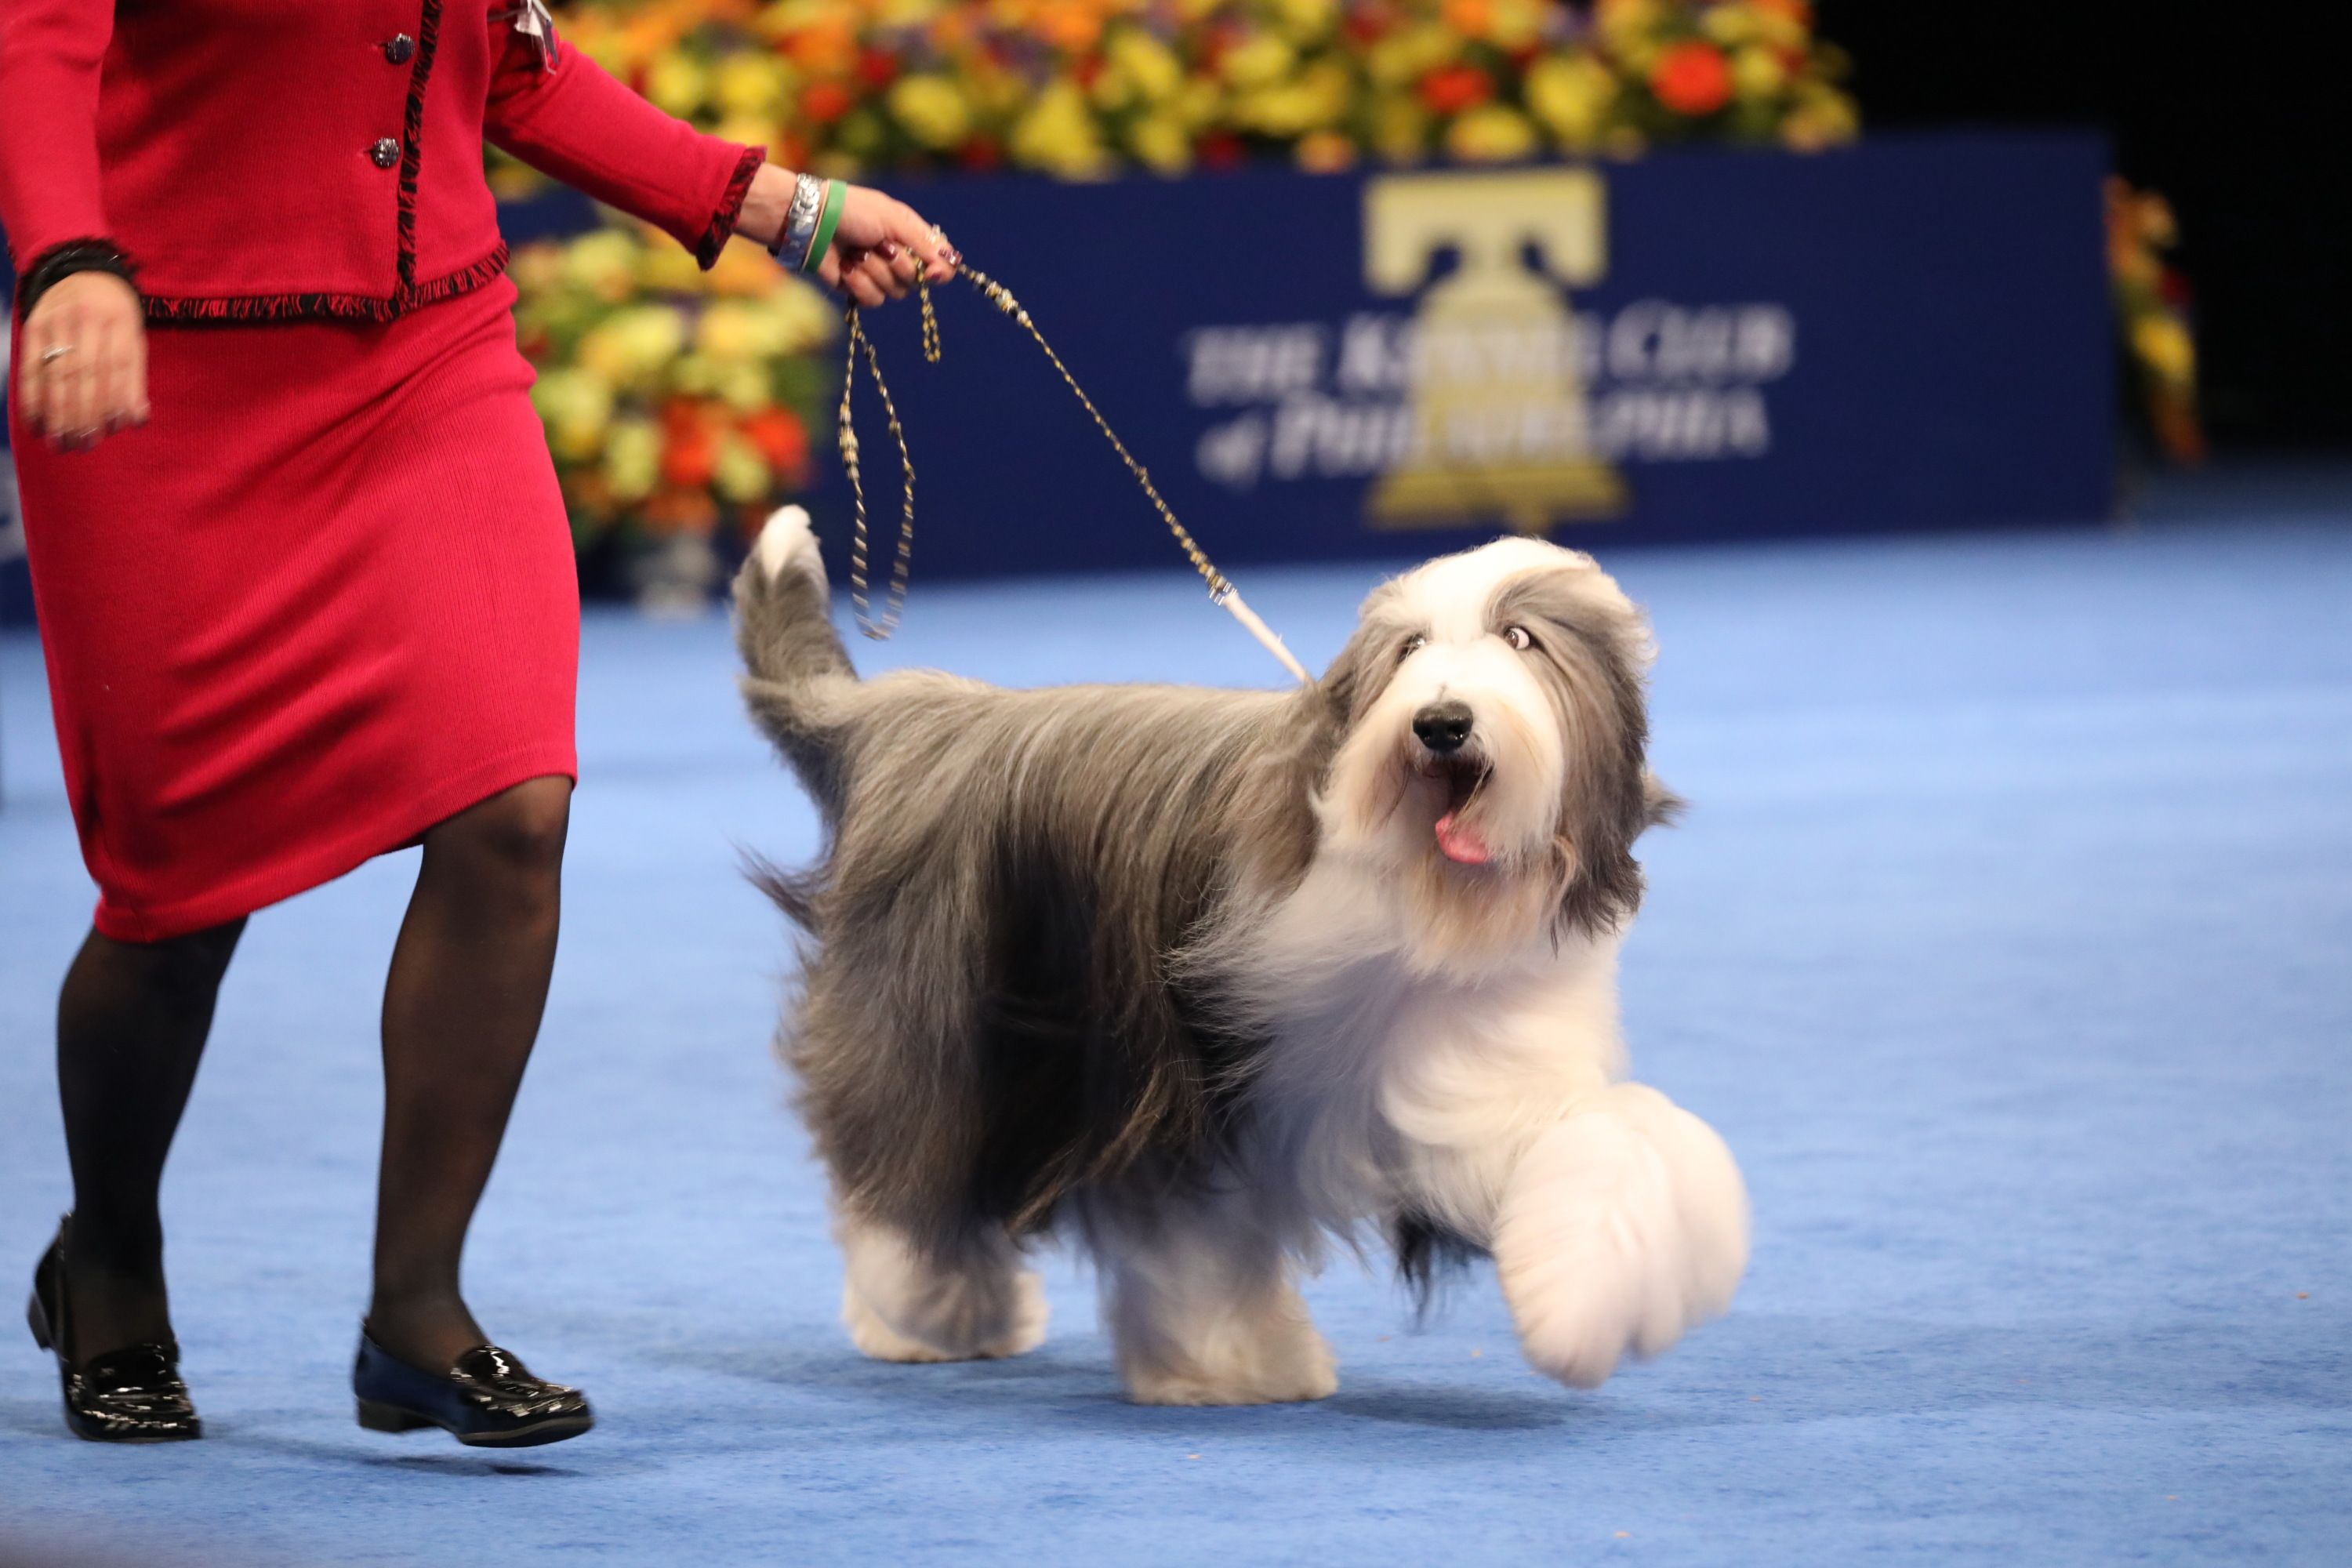 18 Long,Haired Dogs Afghan Hound, Bearded Collie, and More